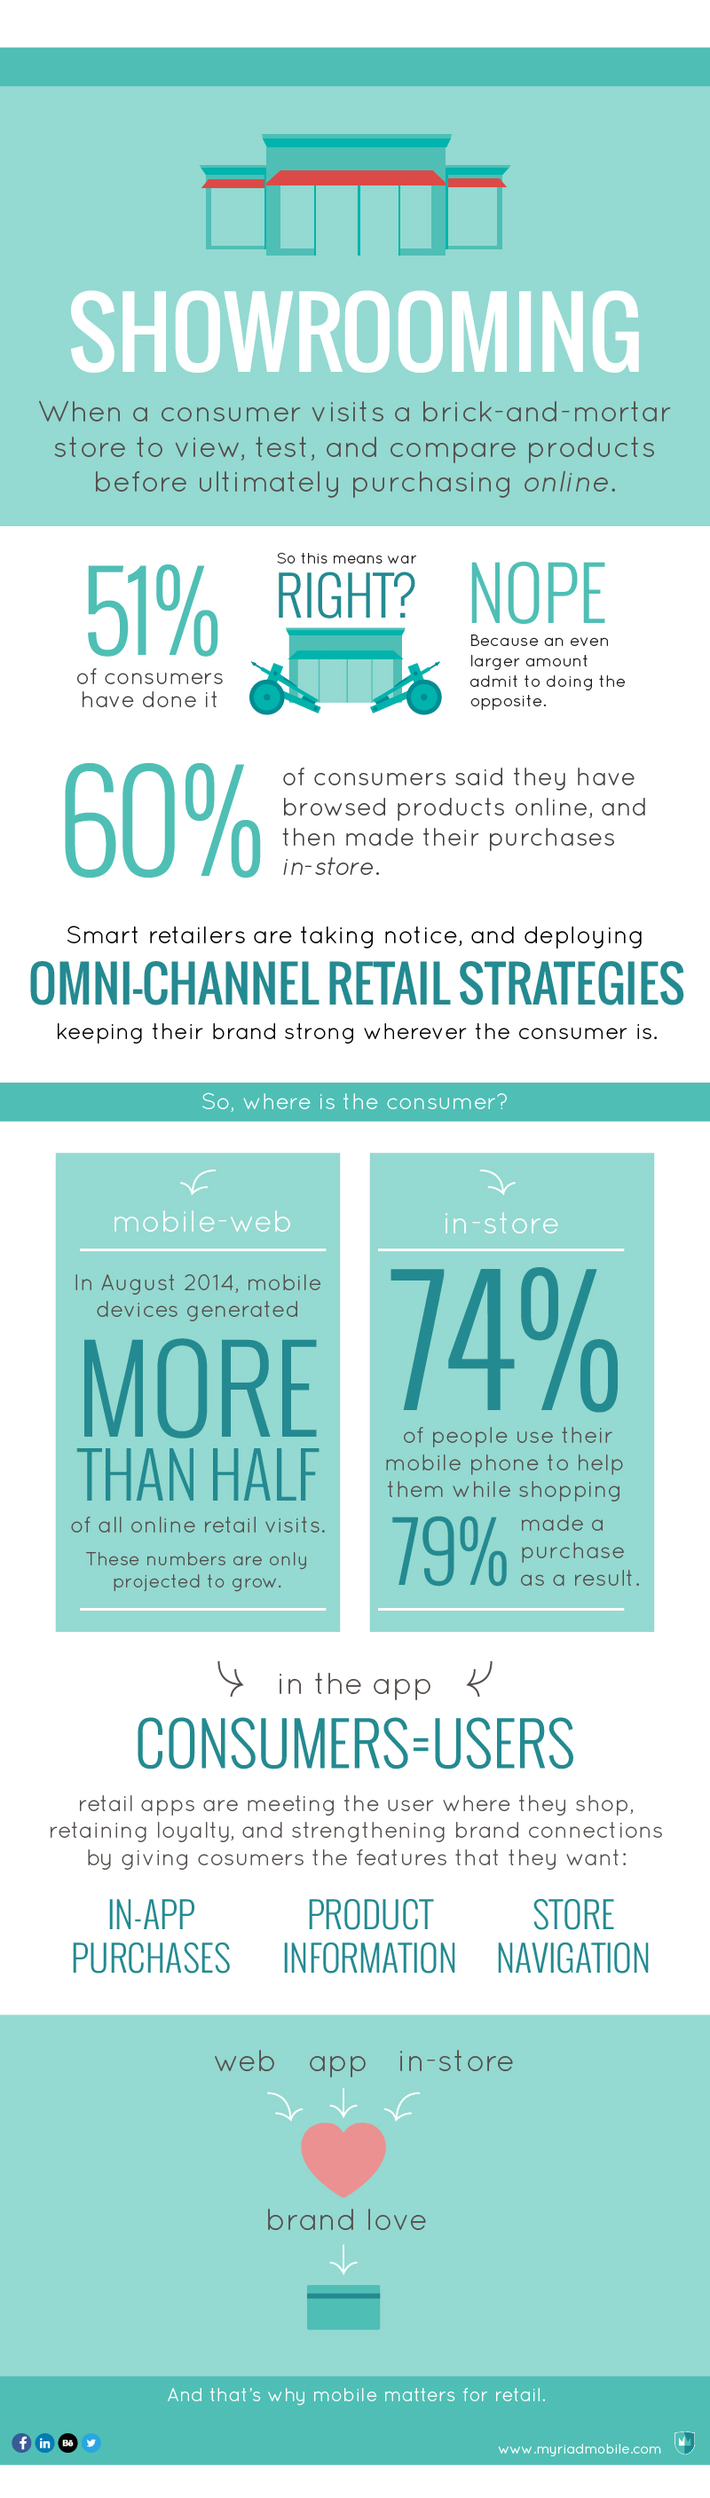 Showrooming Data and Infographic